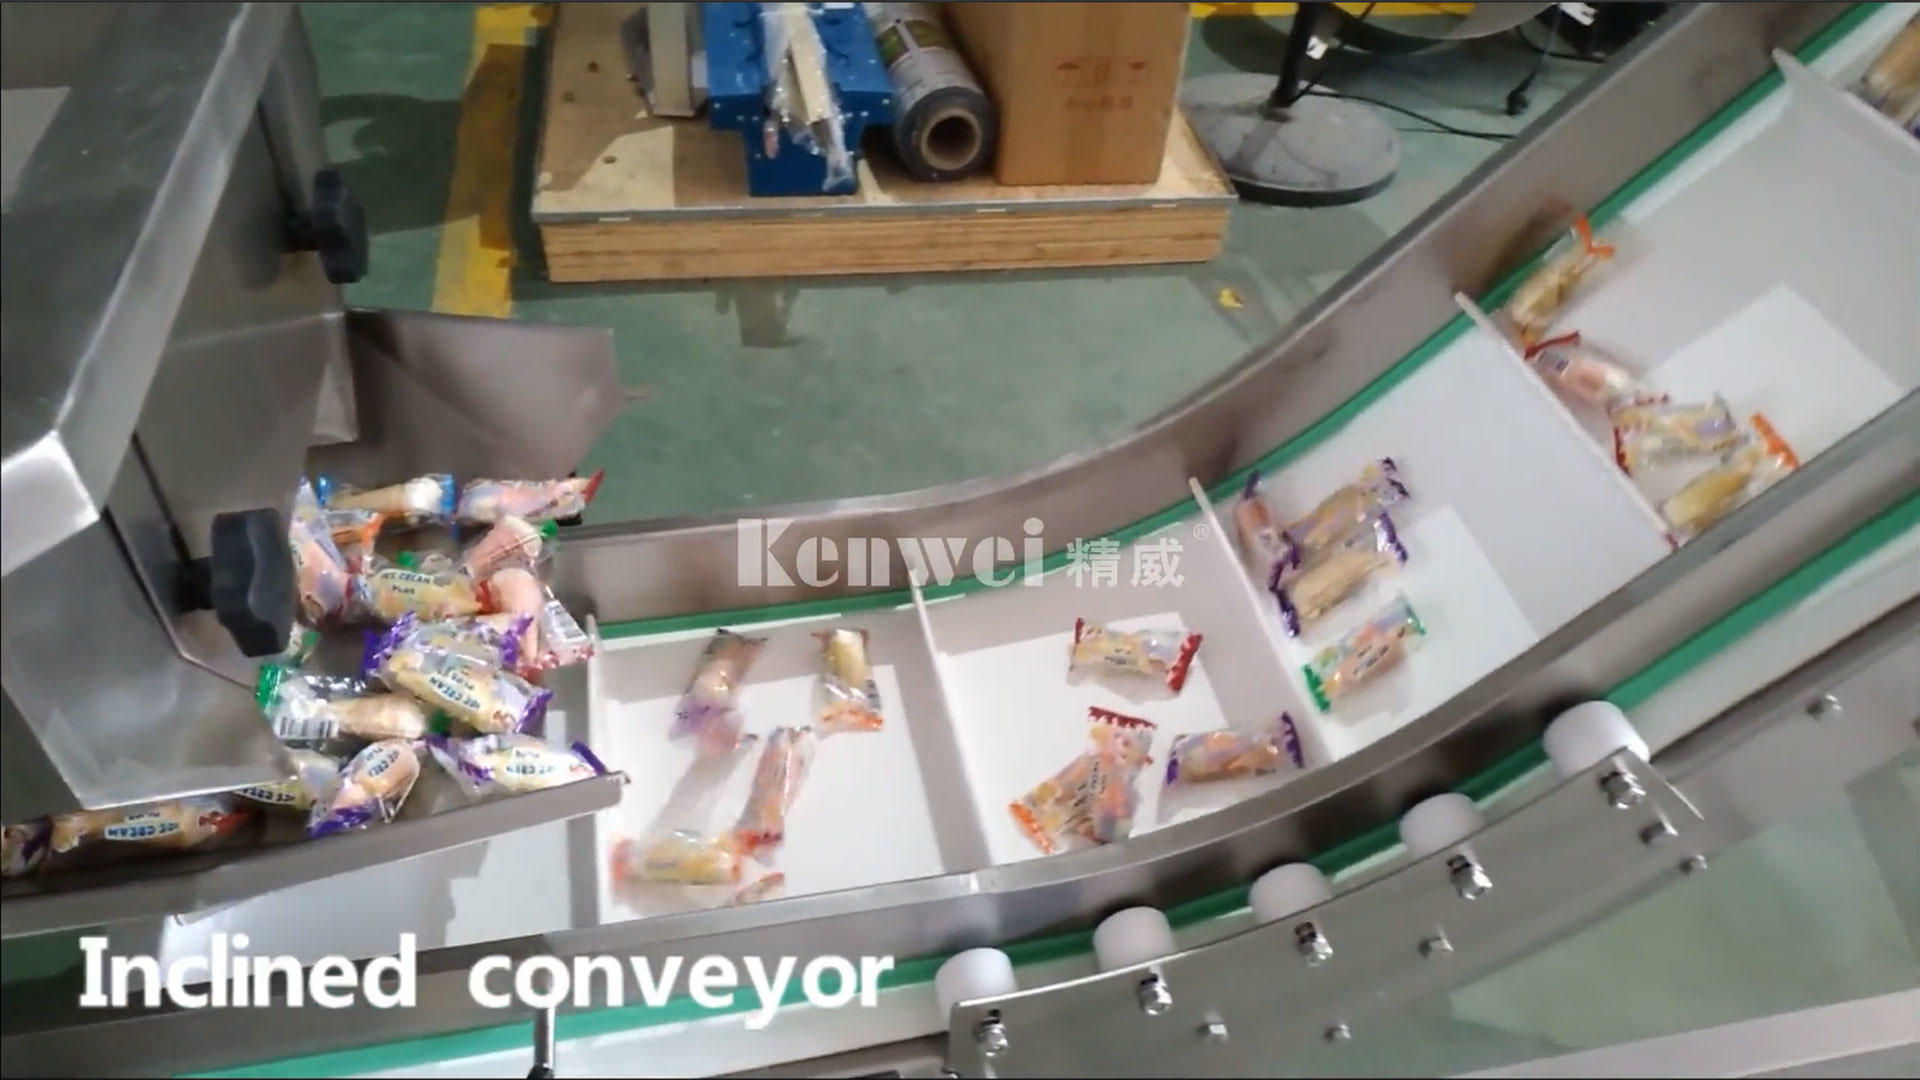 Inclined conveyor in packaging system